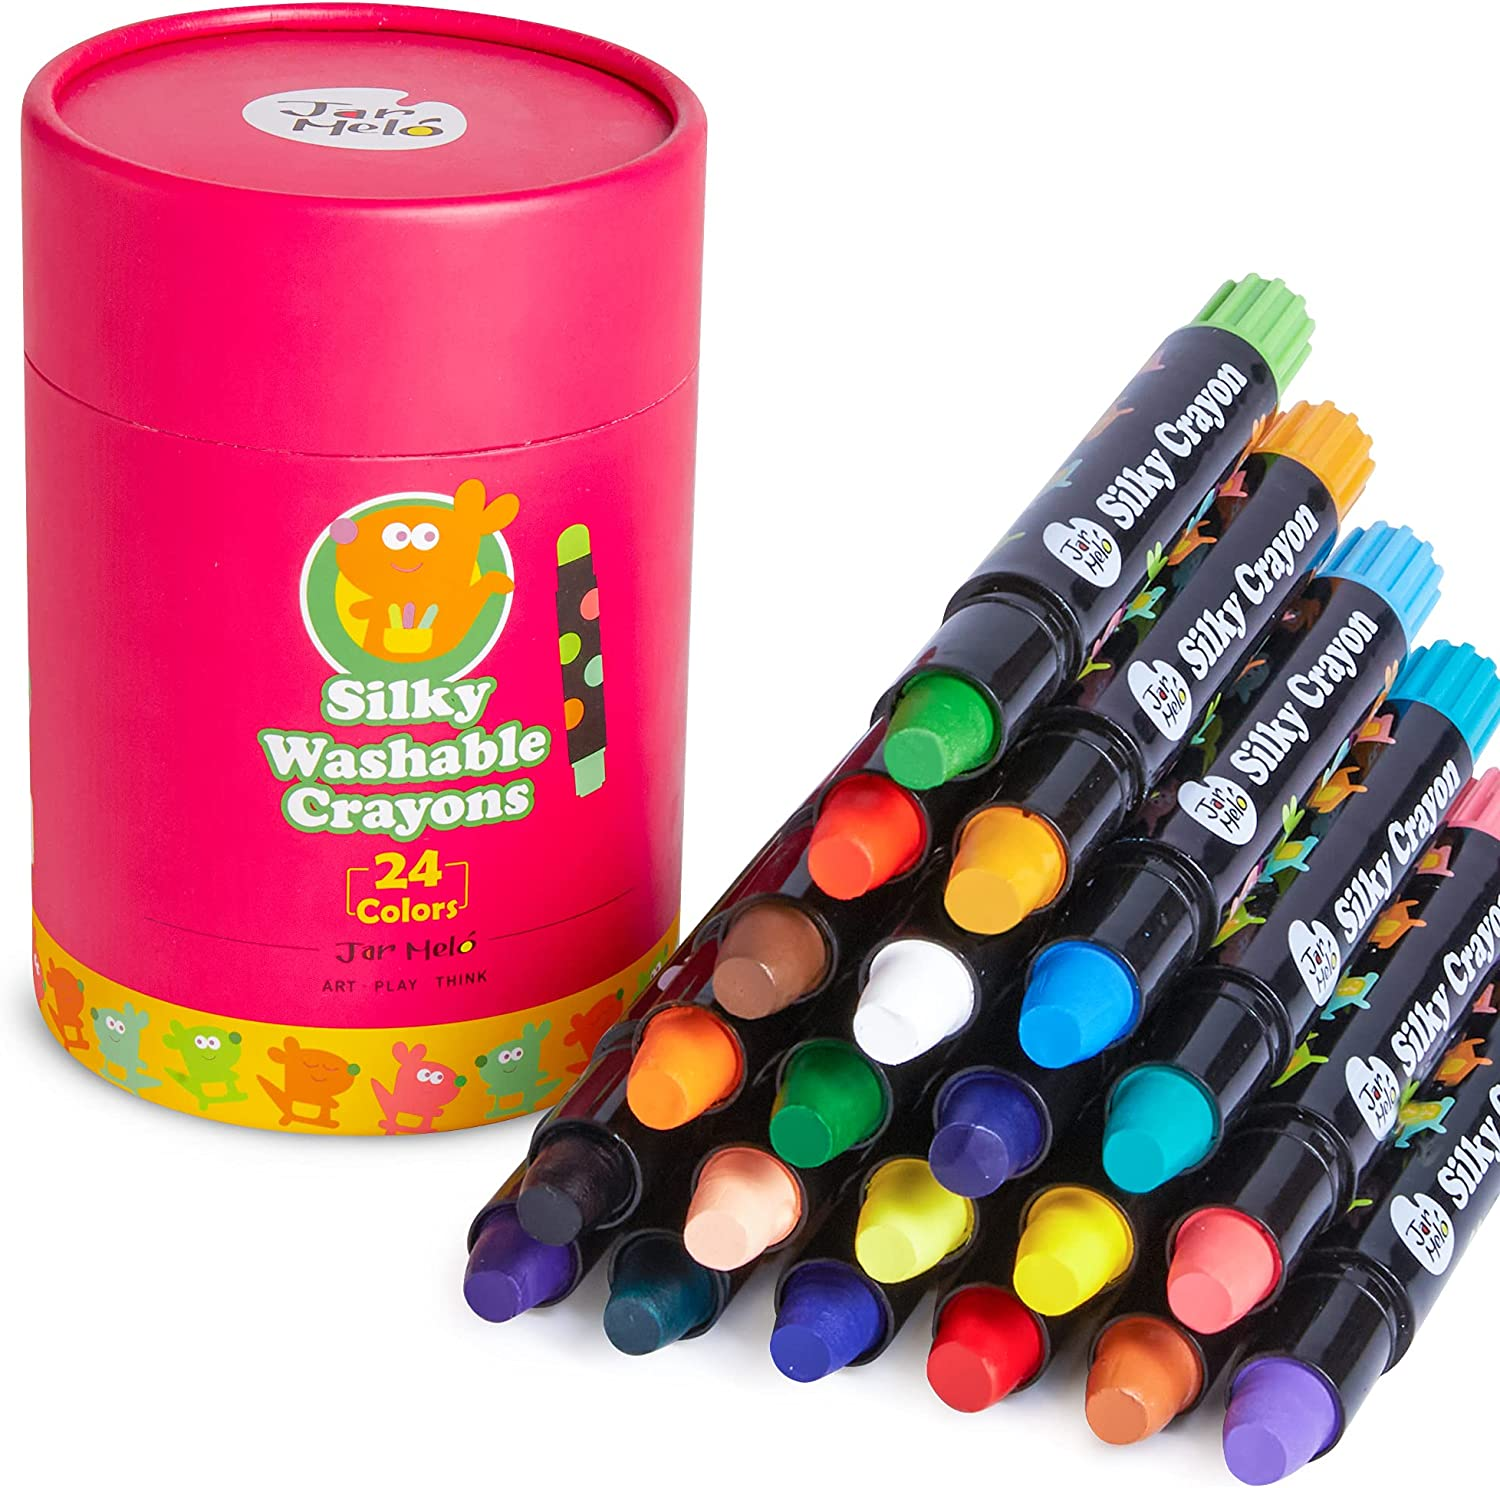 Jar Melo Washable Toddlers Crayons;24 C Minneapolis Mall Weekly update Kids Count Silky Crayons